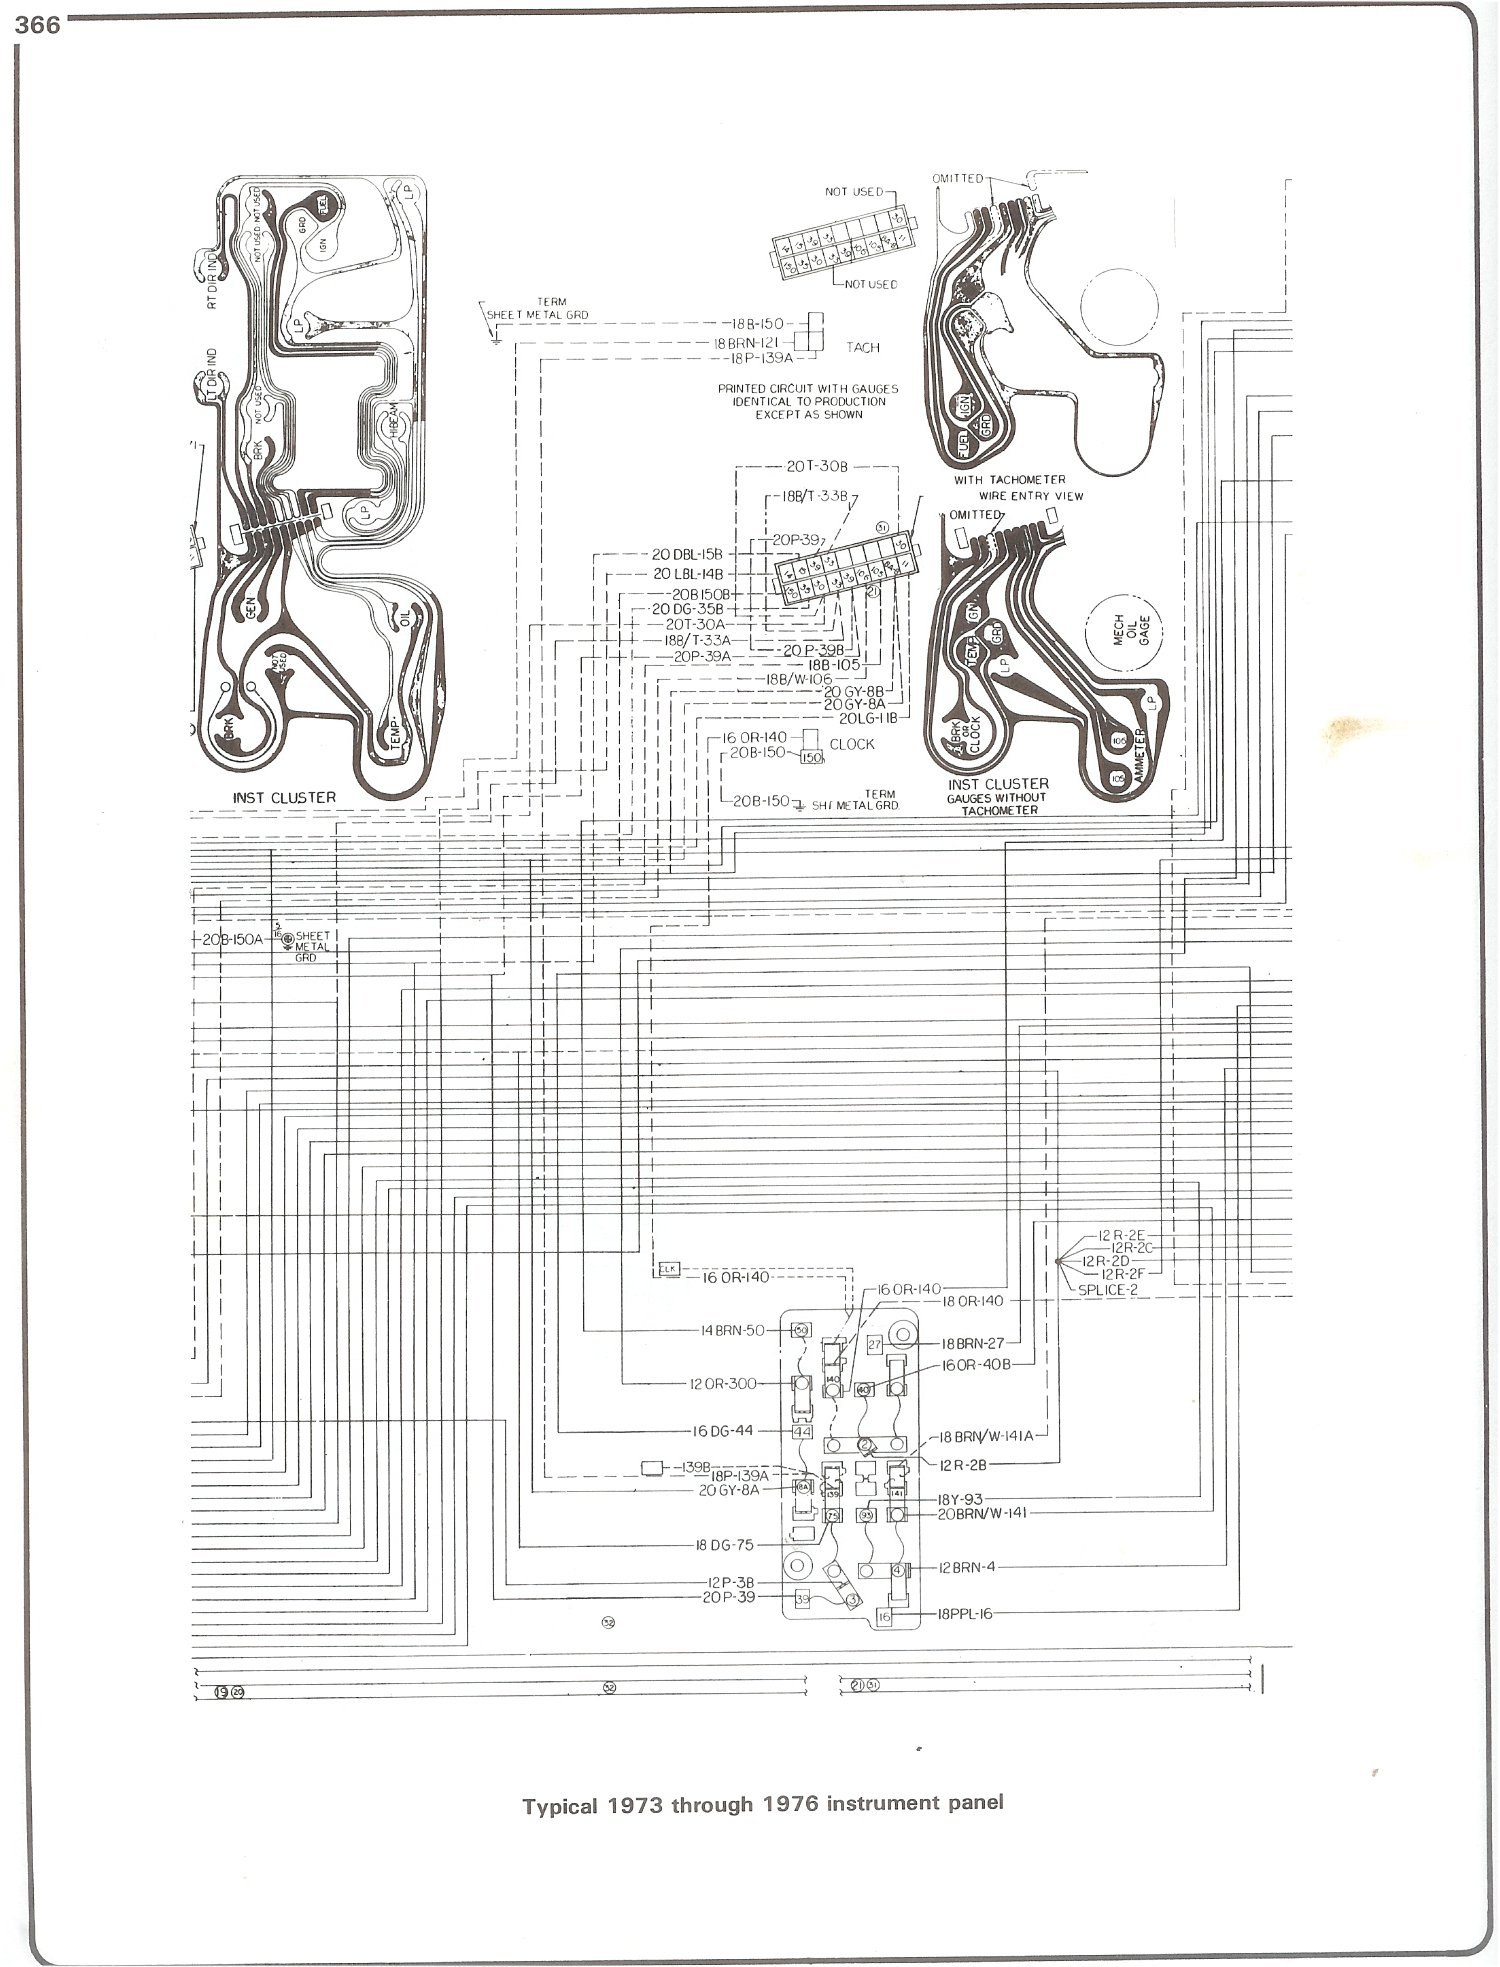 2001 Chevy Truck Radio Wiring Diagram Diagrams And